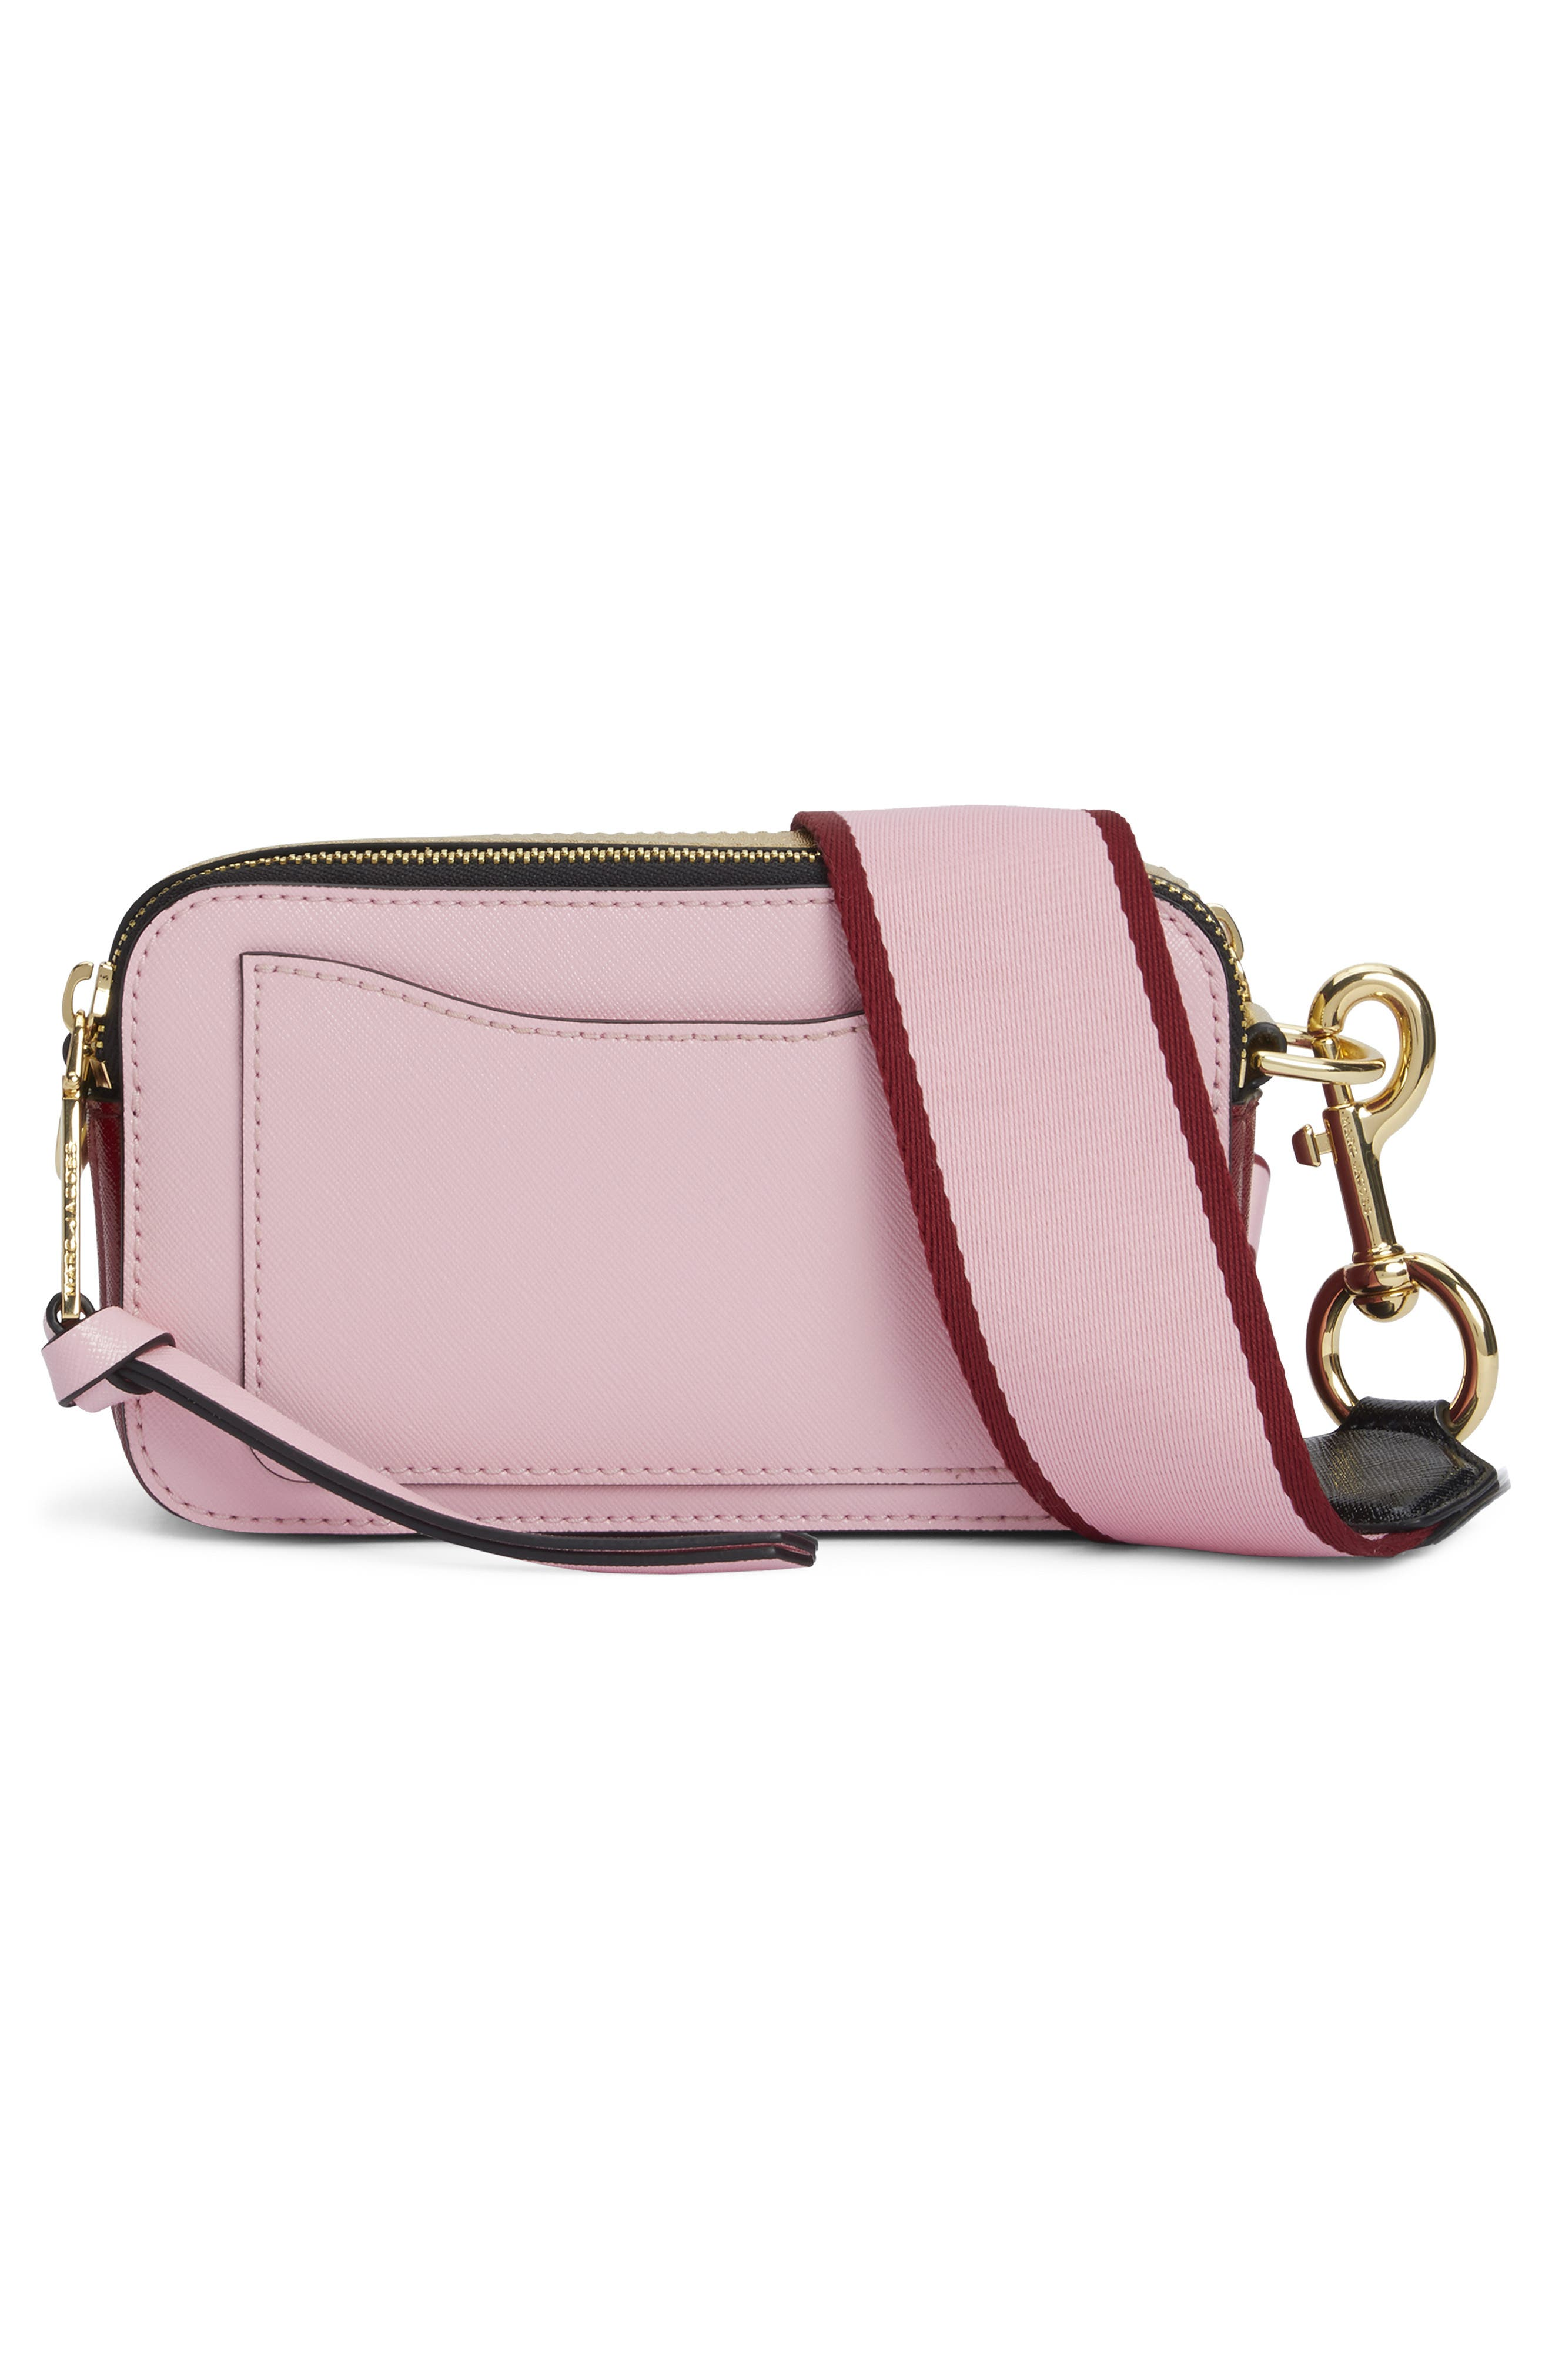 MARC JACOBS, Snapshot Crossbody Bag, Alternate thumbnail 4, color, BABY PINK/ RED